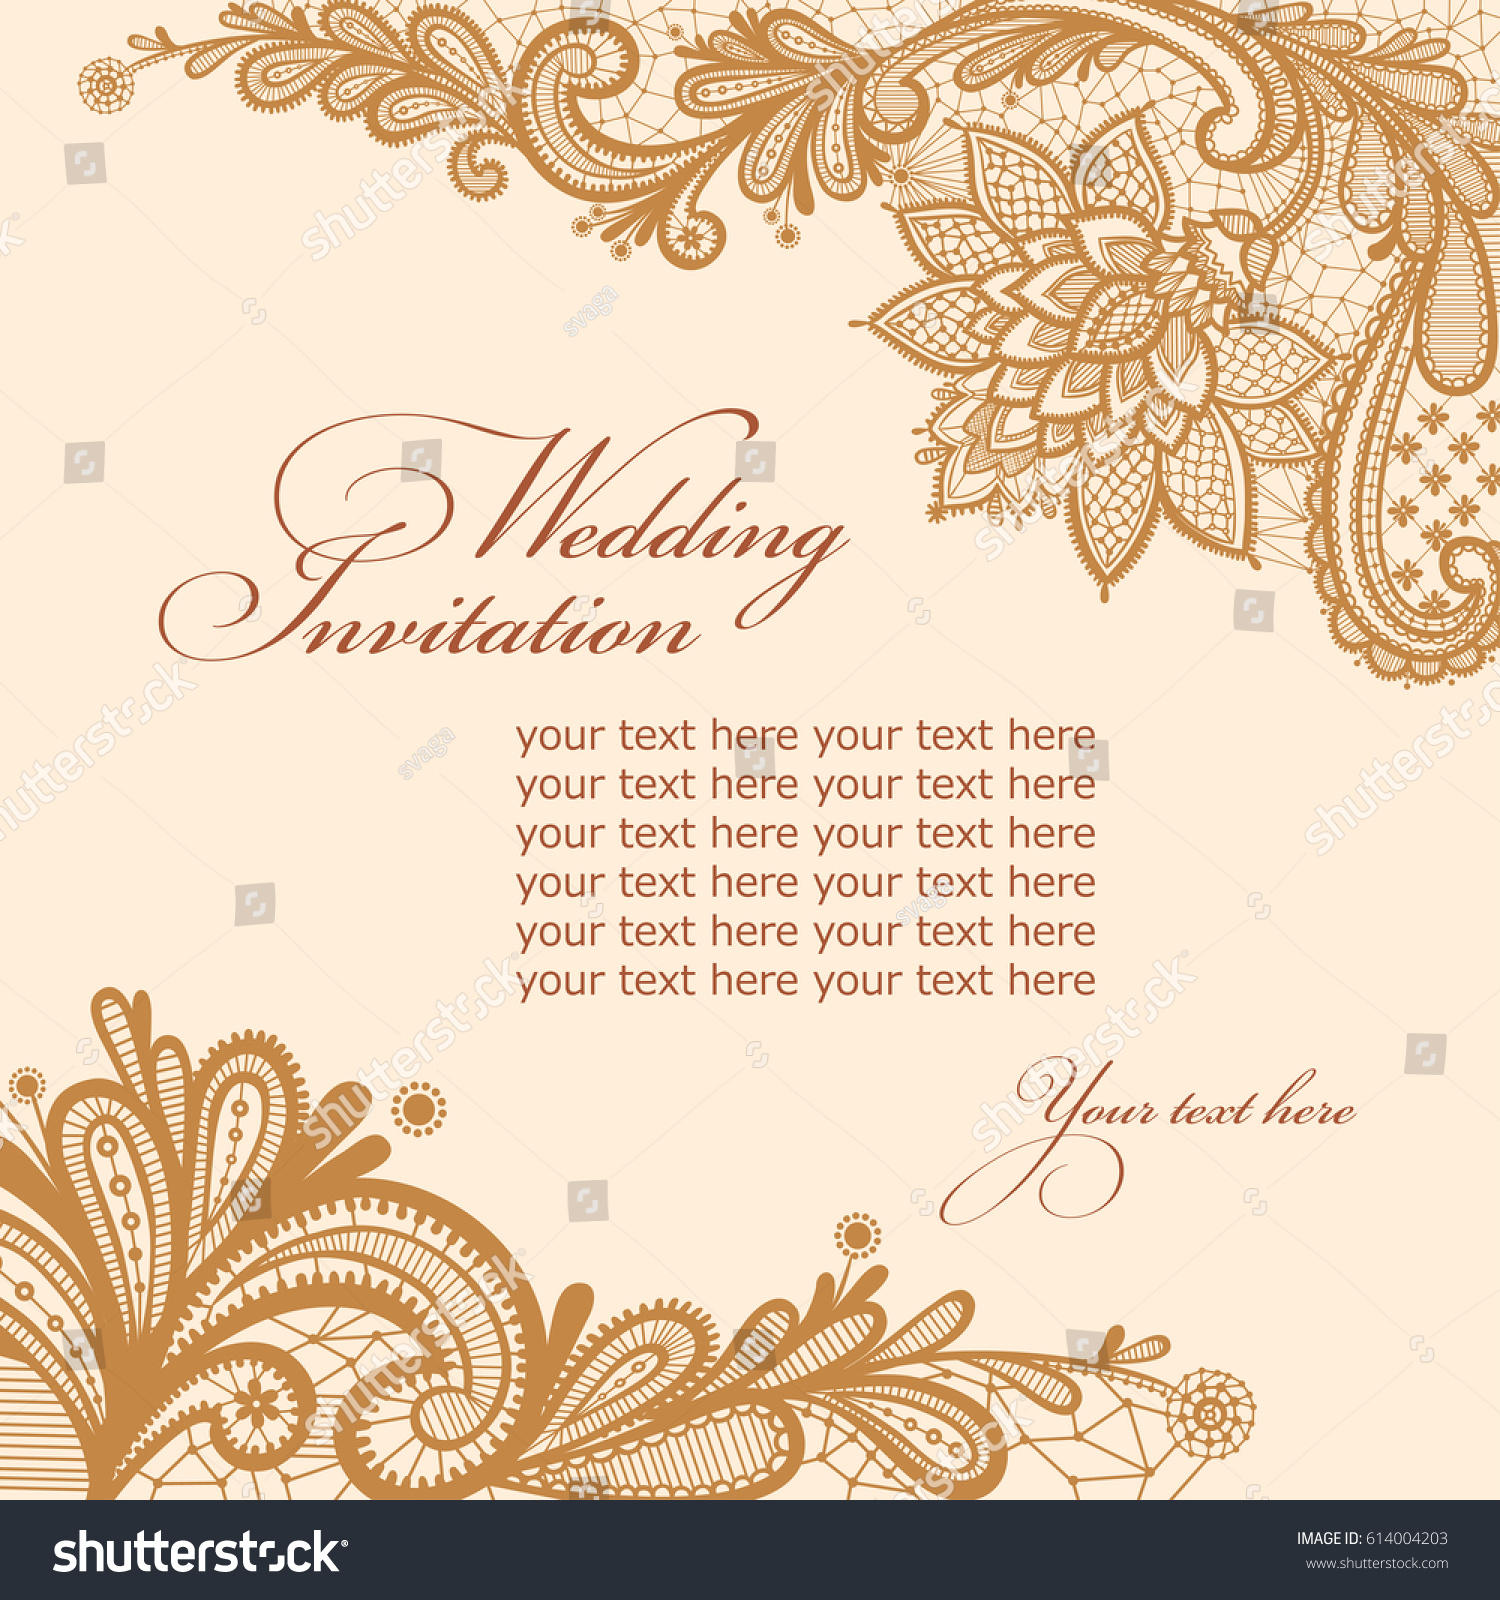 Wedding Invitation Card Lace Text Vector Stock Vector 614004203 ...